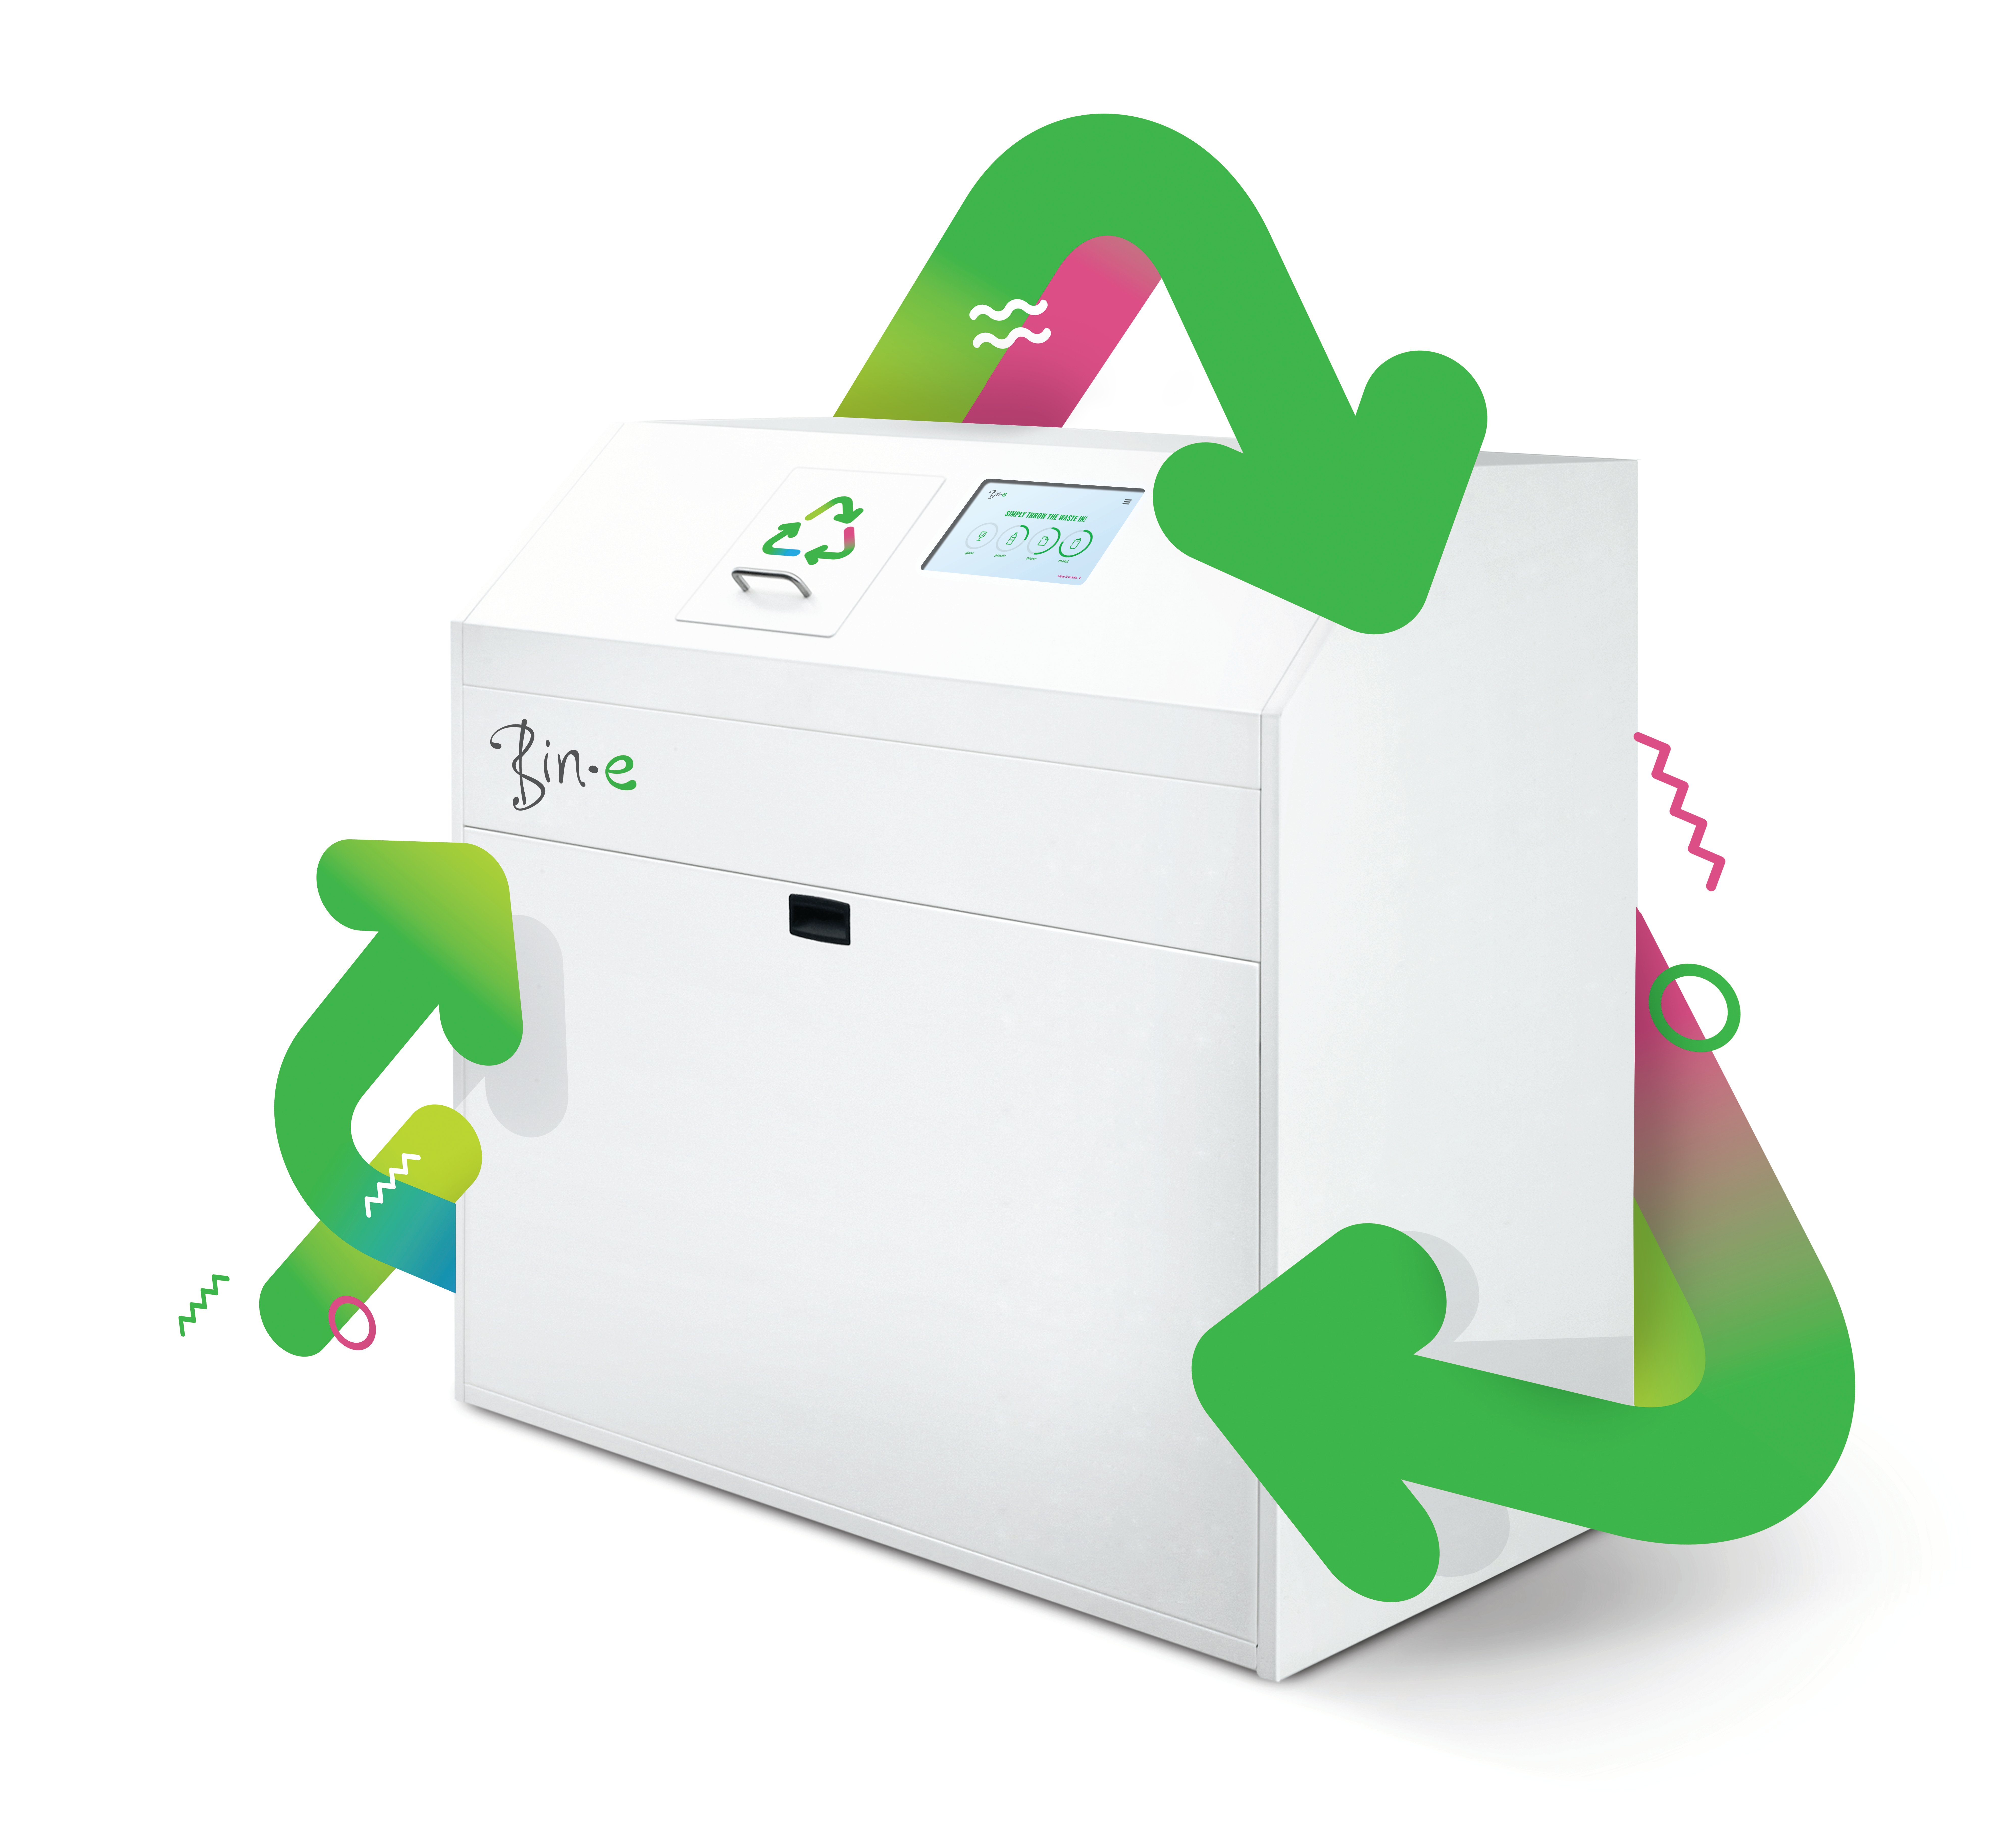 Bin-e_Recycling_CMYK_hires_right